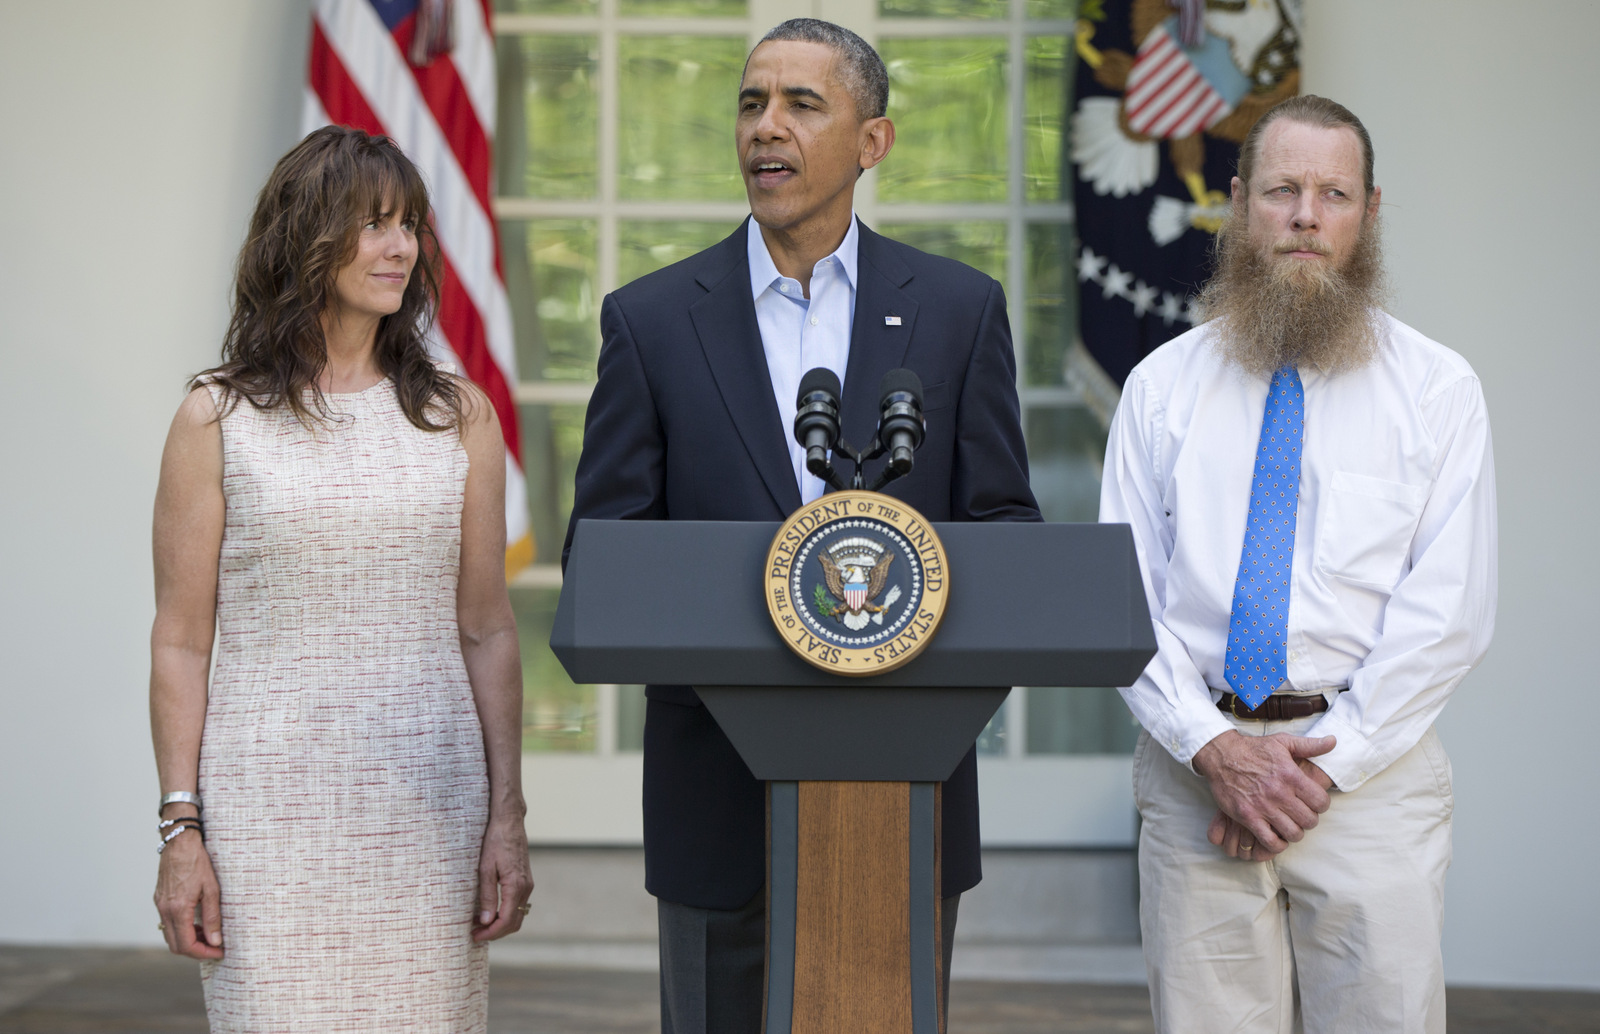 President Barack Obama, accompanied by Jani Bergdahl, left, and Bob Bergdahl, speaks during a news conference in the Rose Garden of the White House in Washington on Saturday, May 31, 2014 about the release of their son, U.S. Army Sgt. Bowe Bergdahl. (AP/Carolyn Kaster)